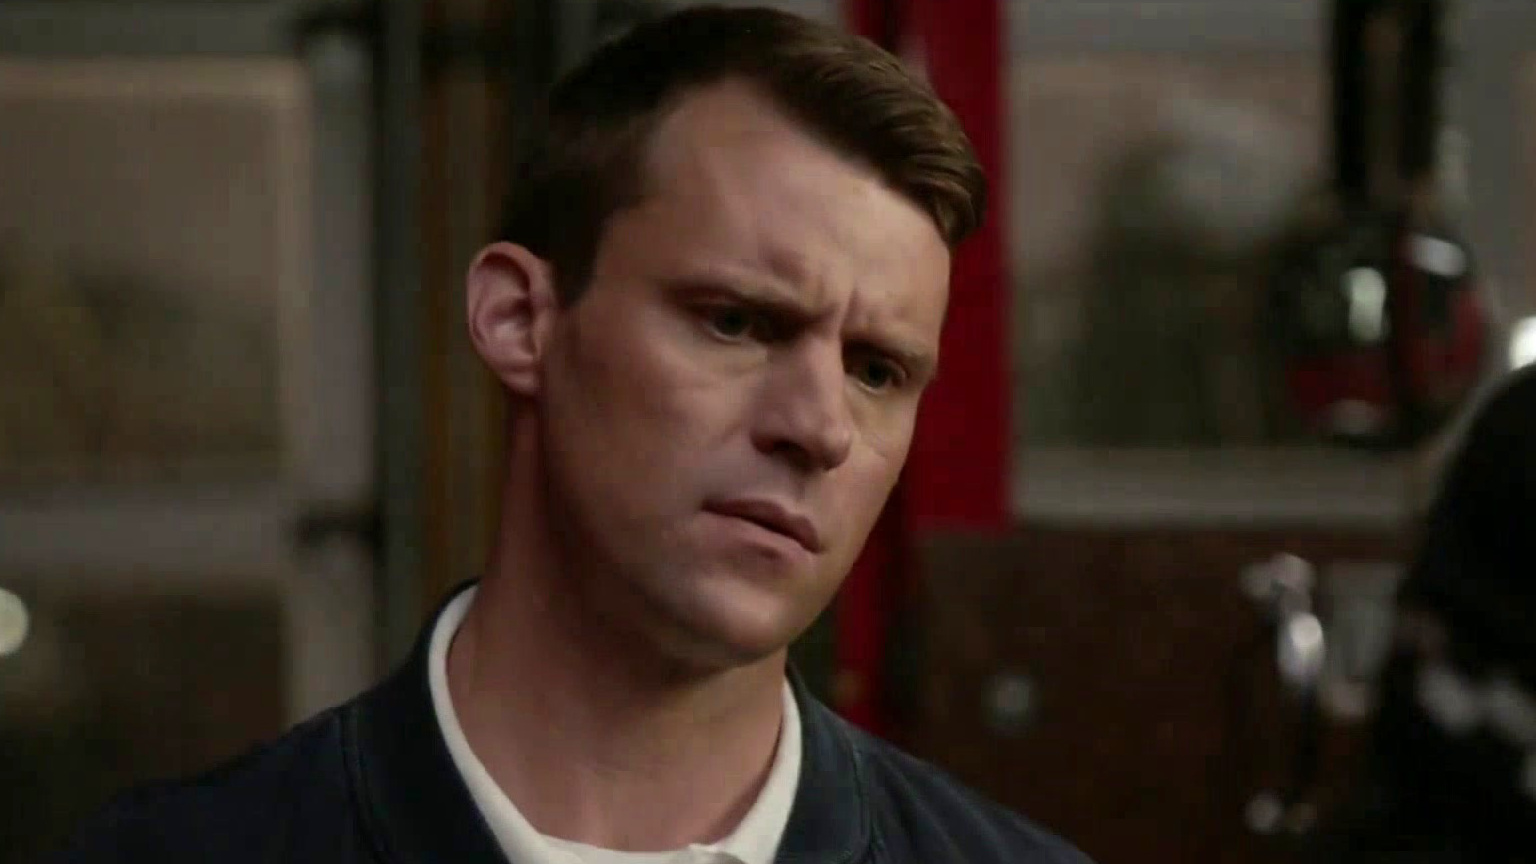 Chicago Fire: The Tendency Of A Drowning Victim